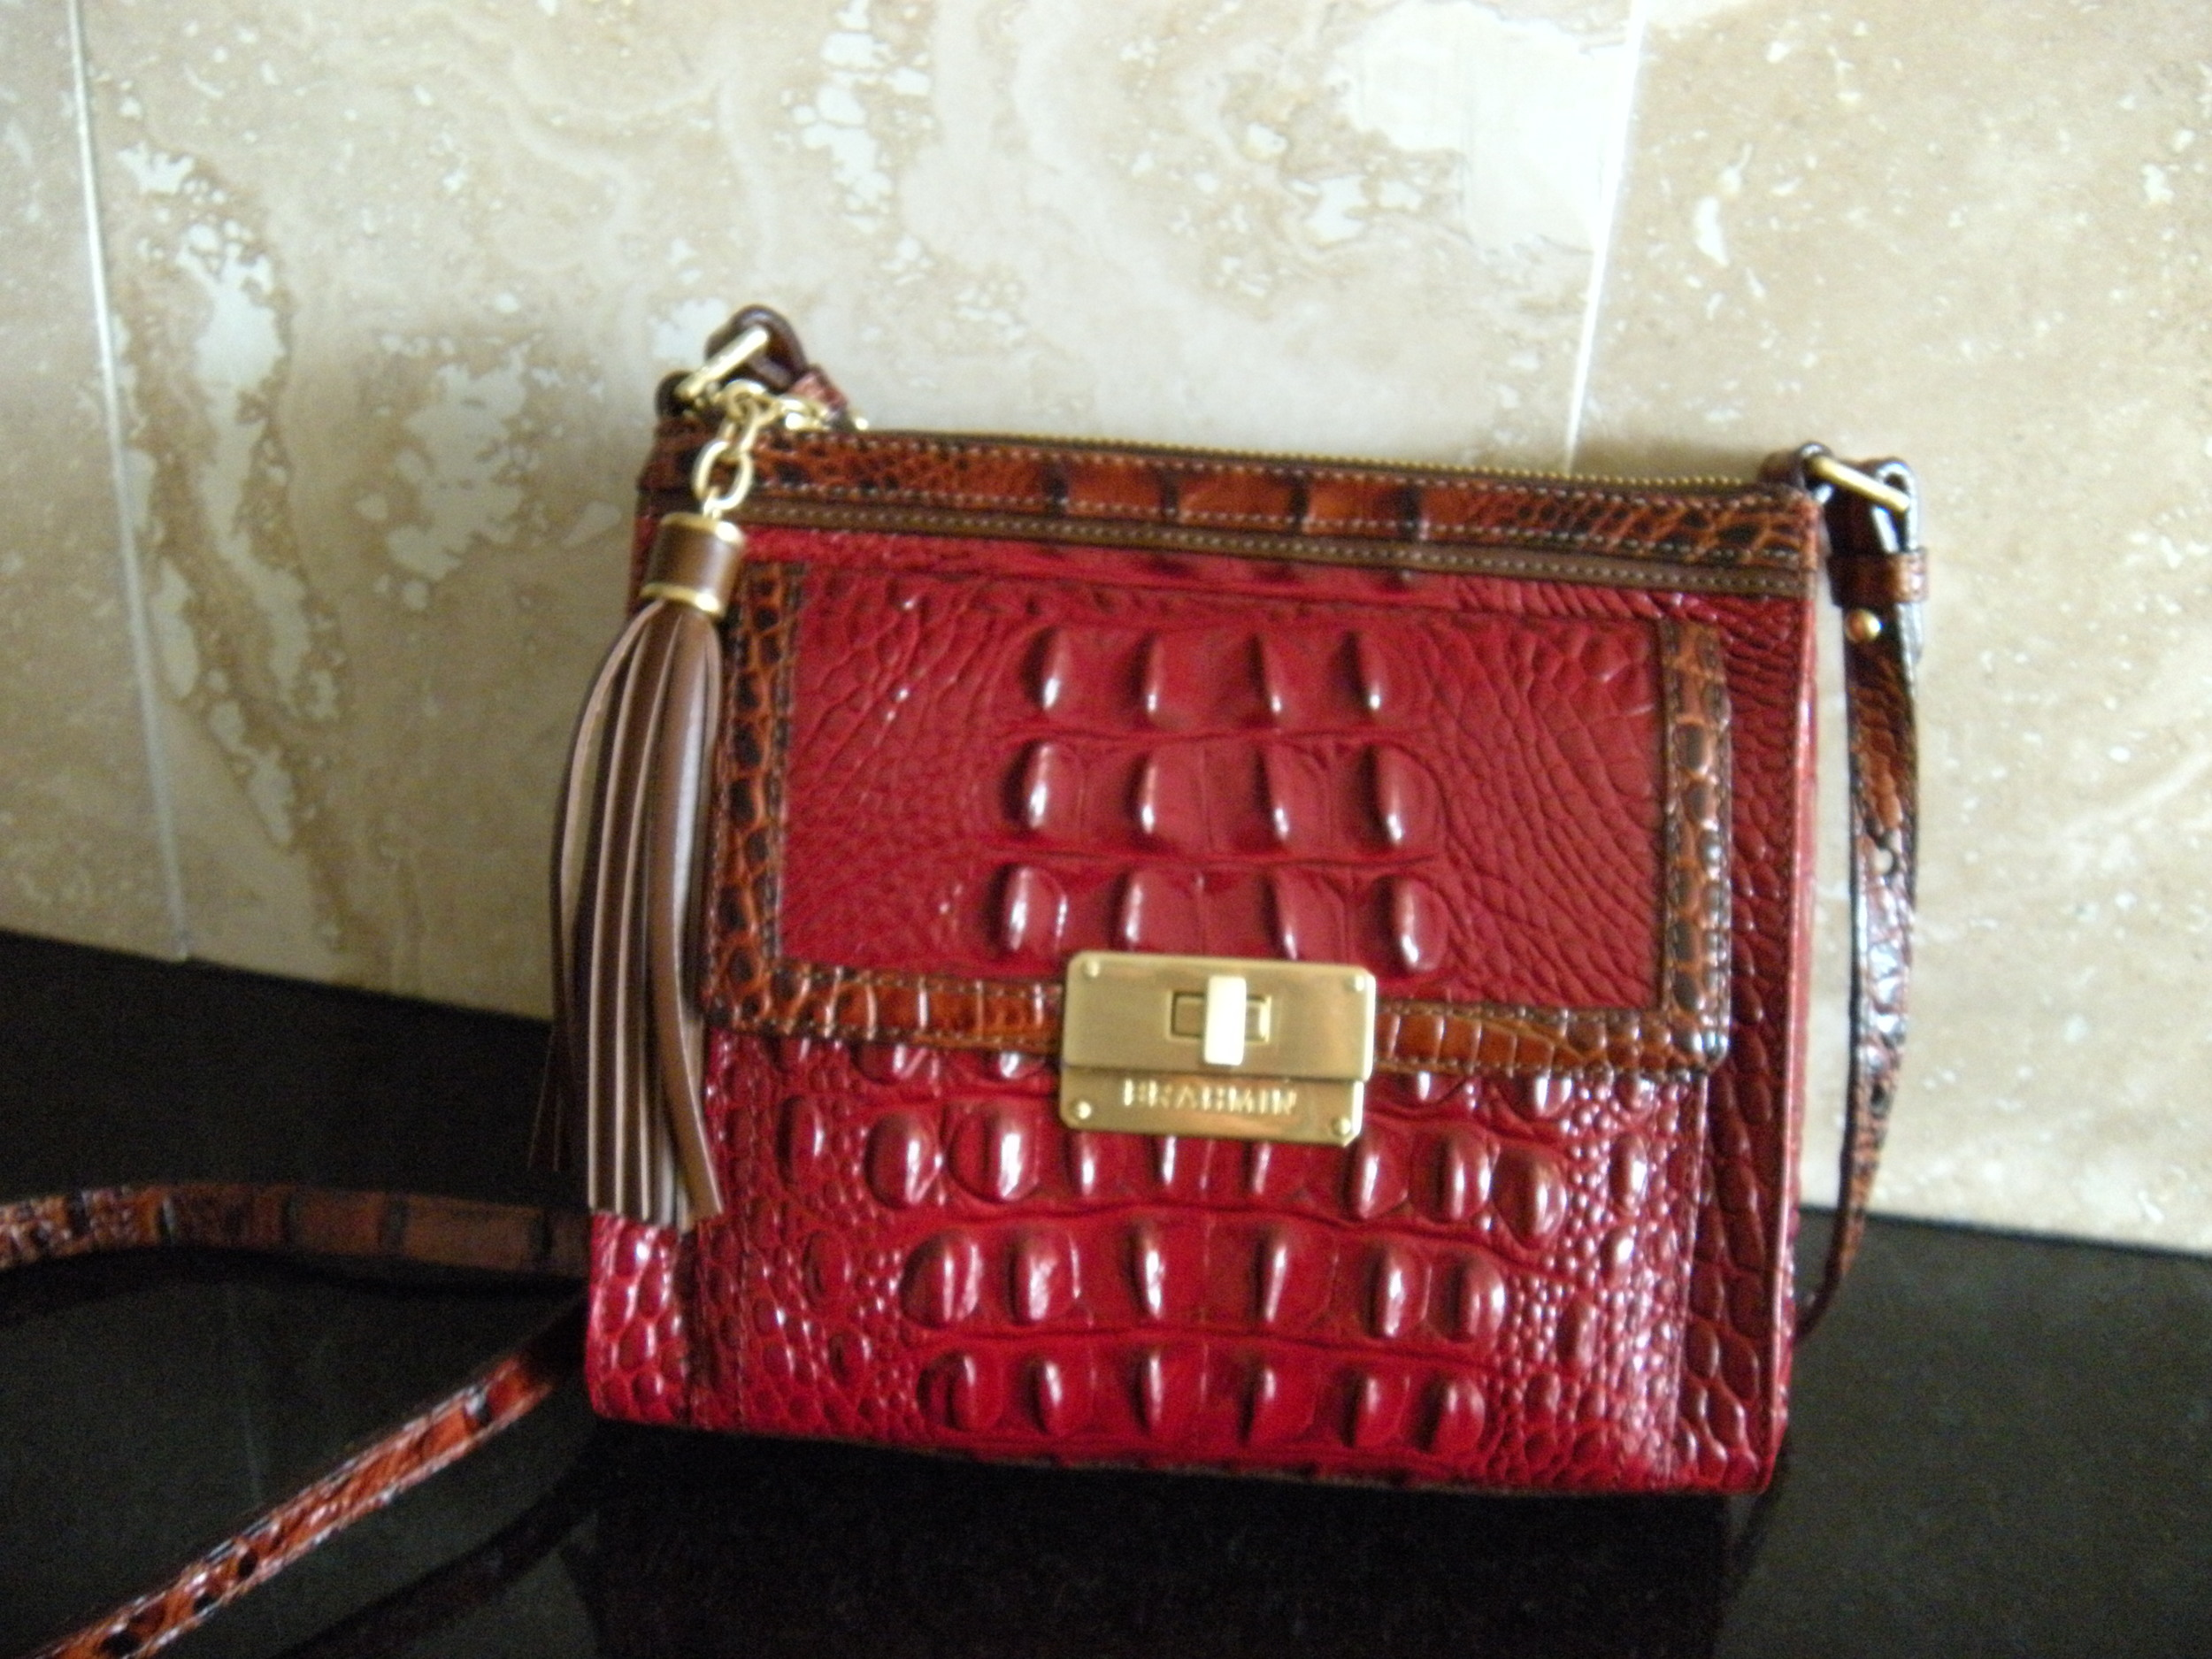 For those who haven't seen it in person, this is my new purse, which David got me for Christmas. Isn't it beautiful?